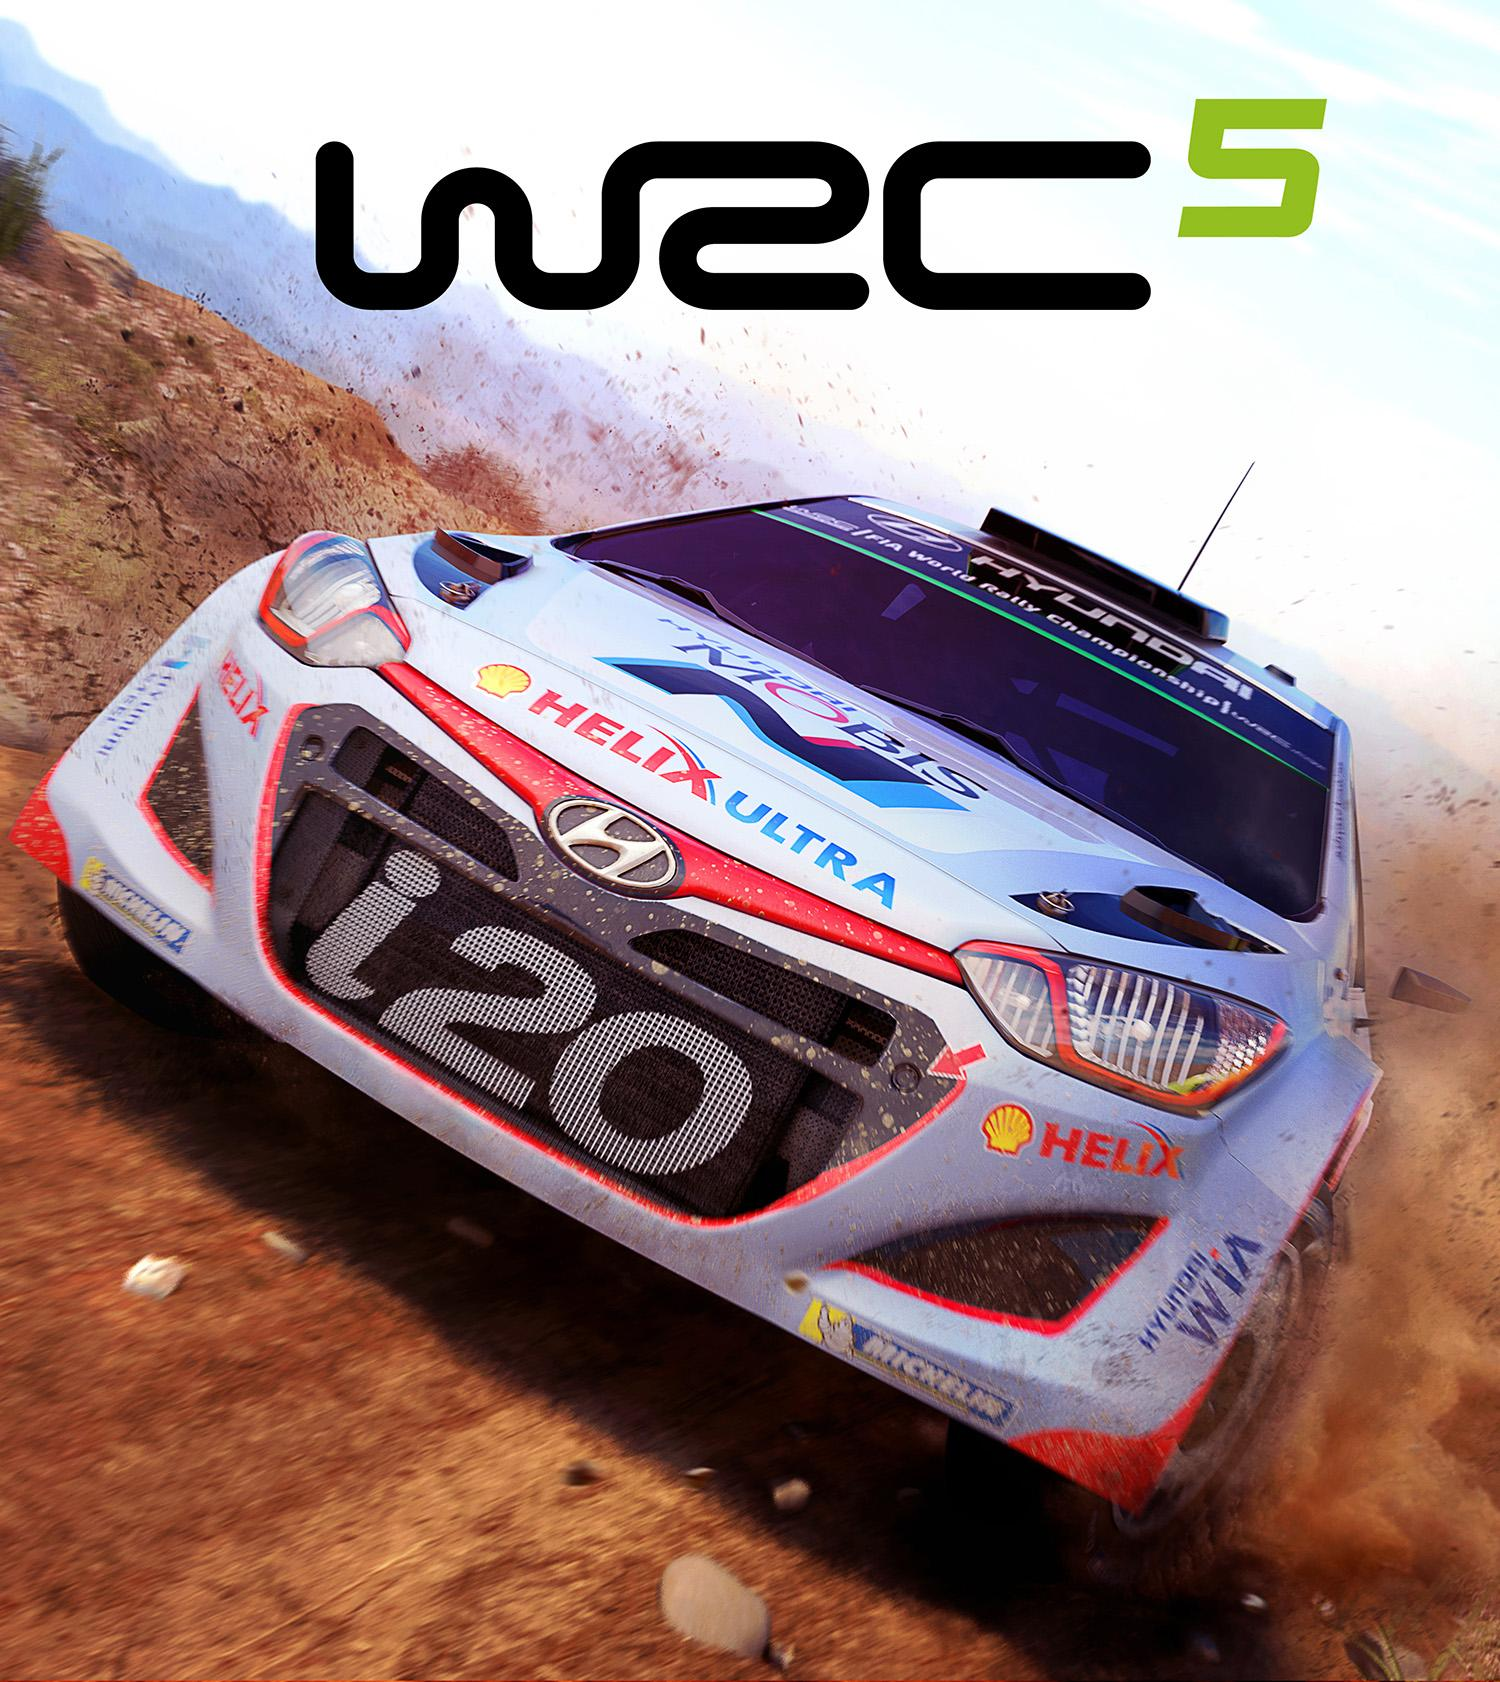 FIA WORLD RALLY CHAMPIONSHIP WRC 5: WRC 5 OFFICIAL VIDEO GAME READY FOR WORLDWIDE LAUNCH